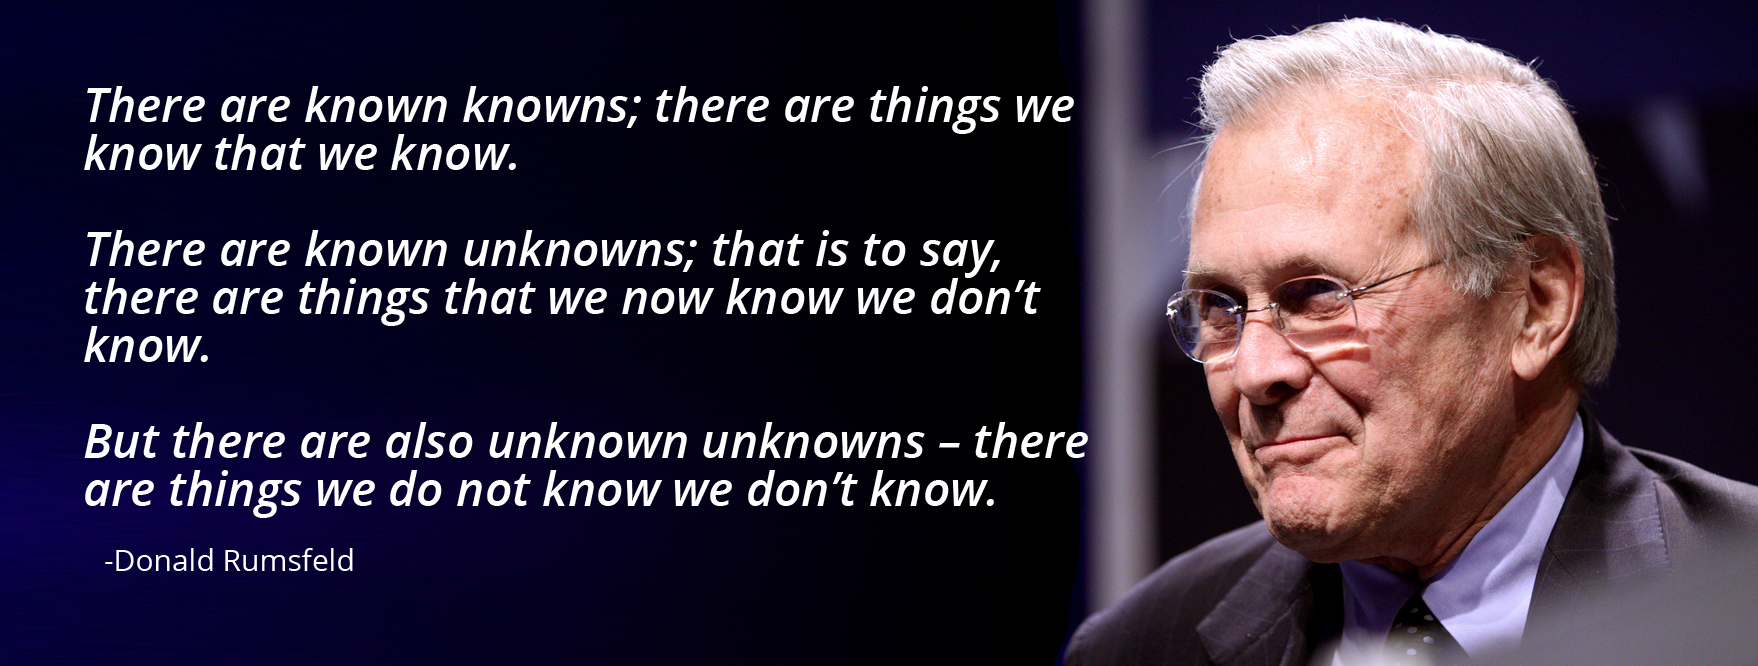 rumsfeld-unknown-unknowns.jpg